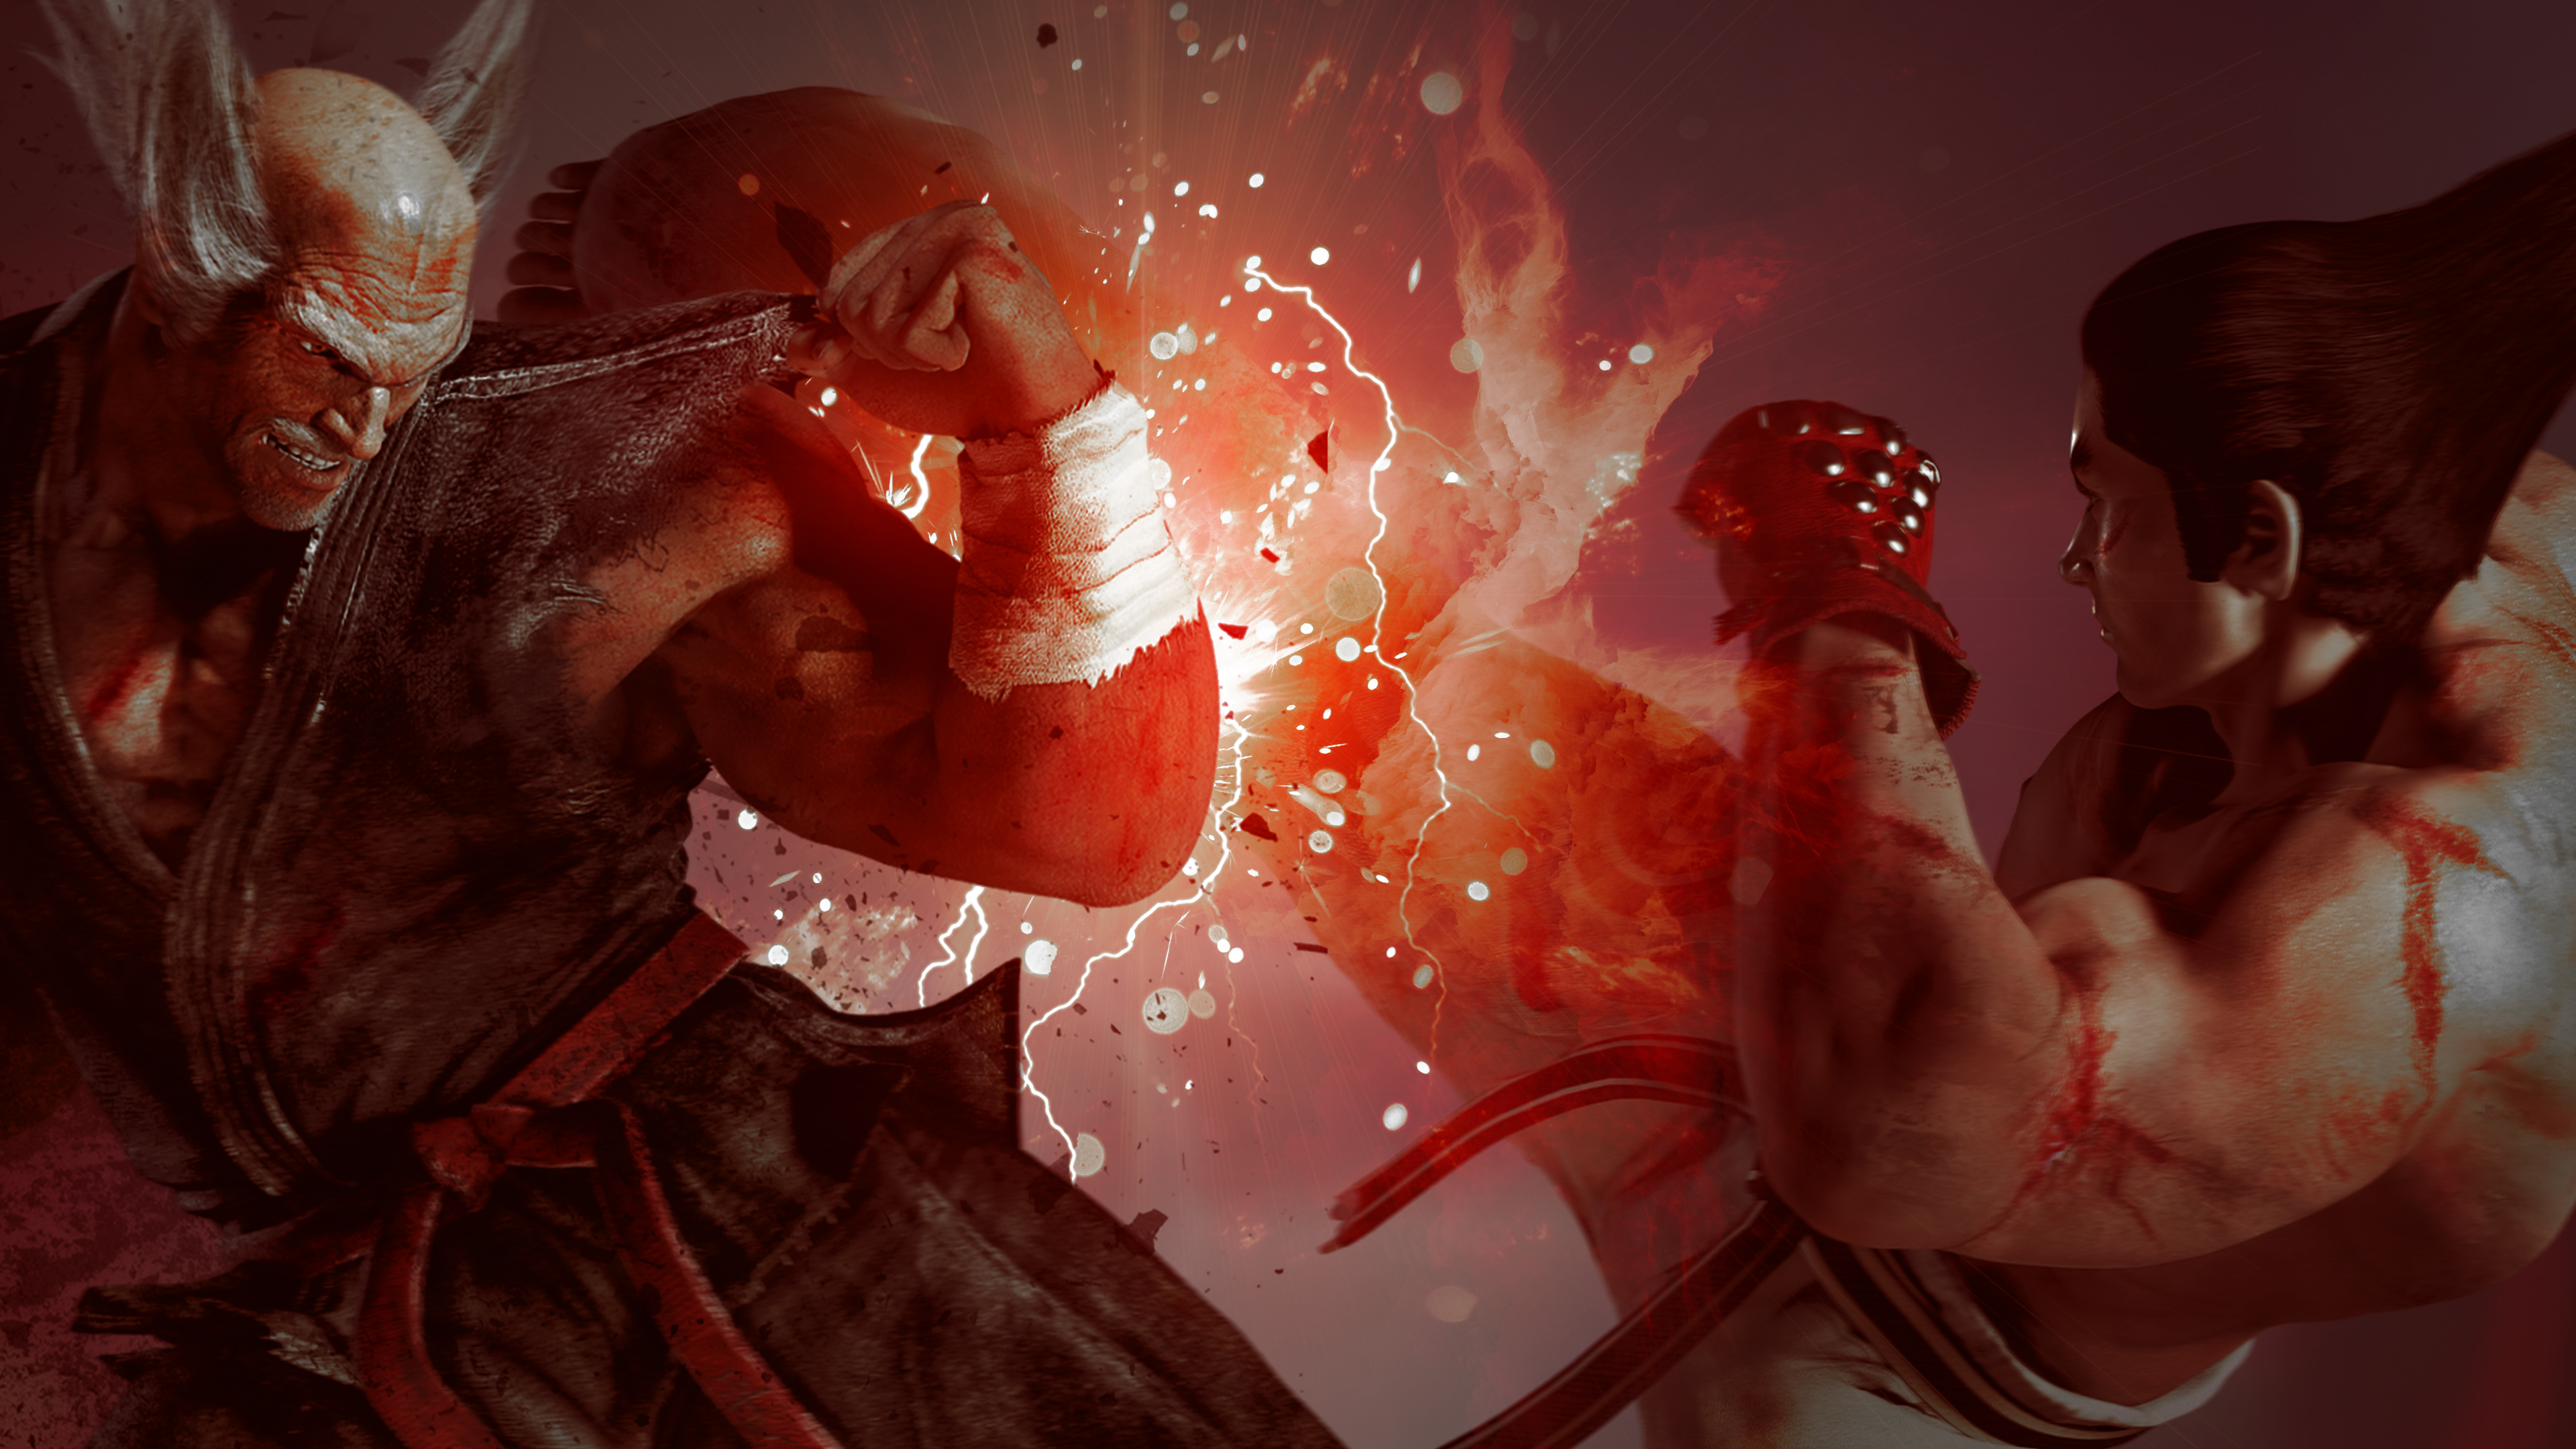 Tekken 4k Wallpapers For Your Desktop Or Mobile Screen Free And